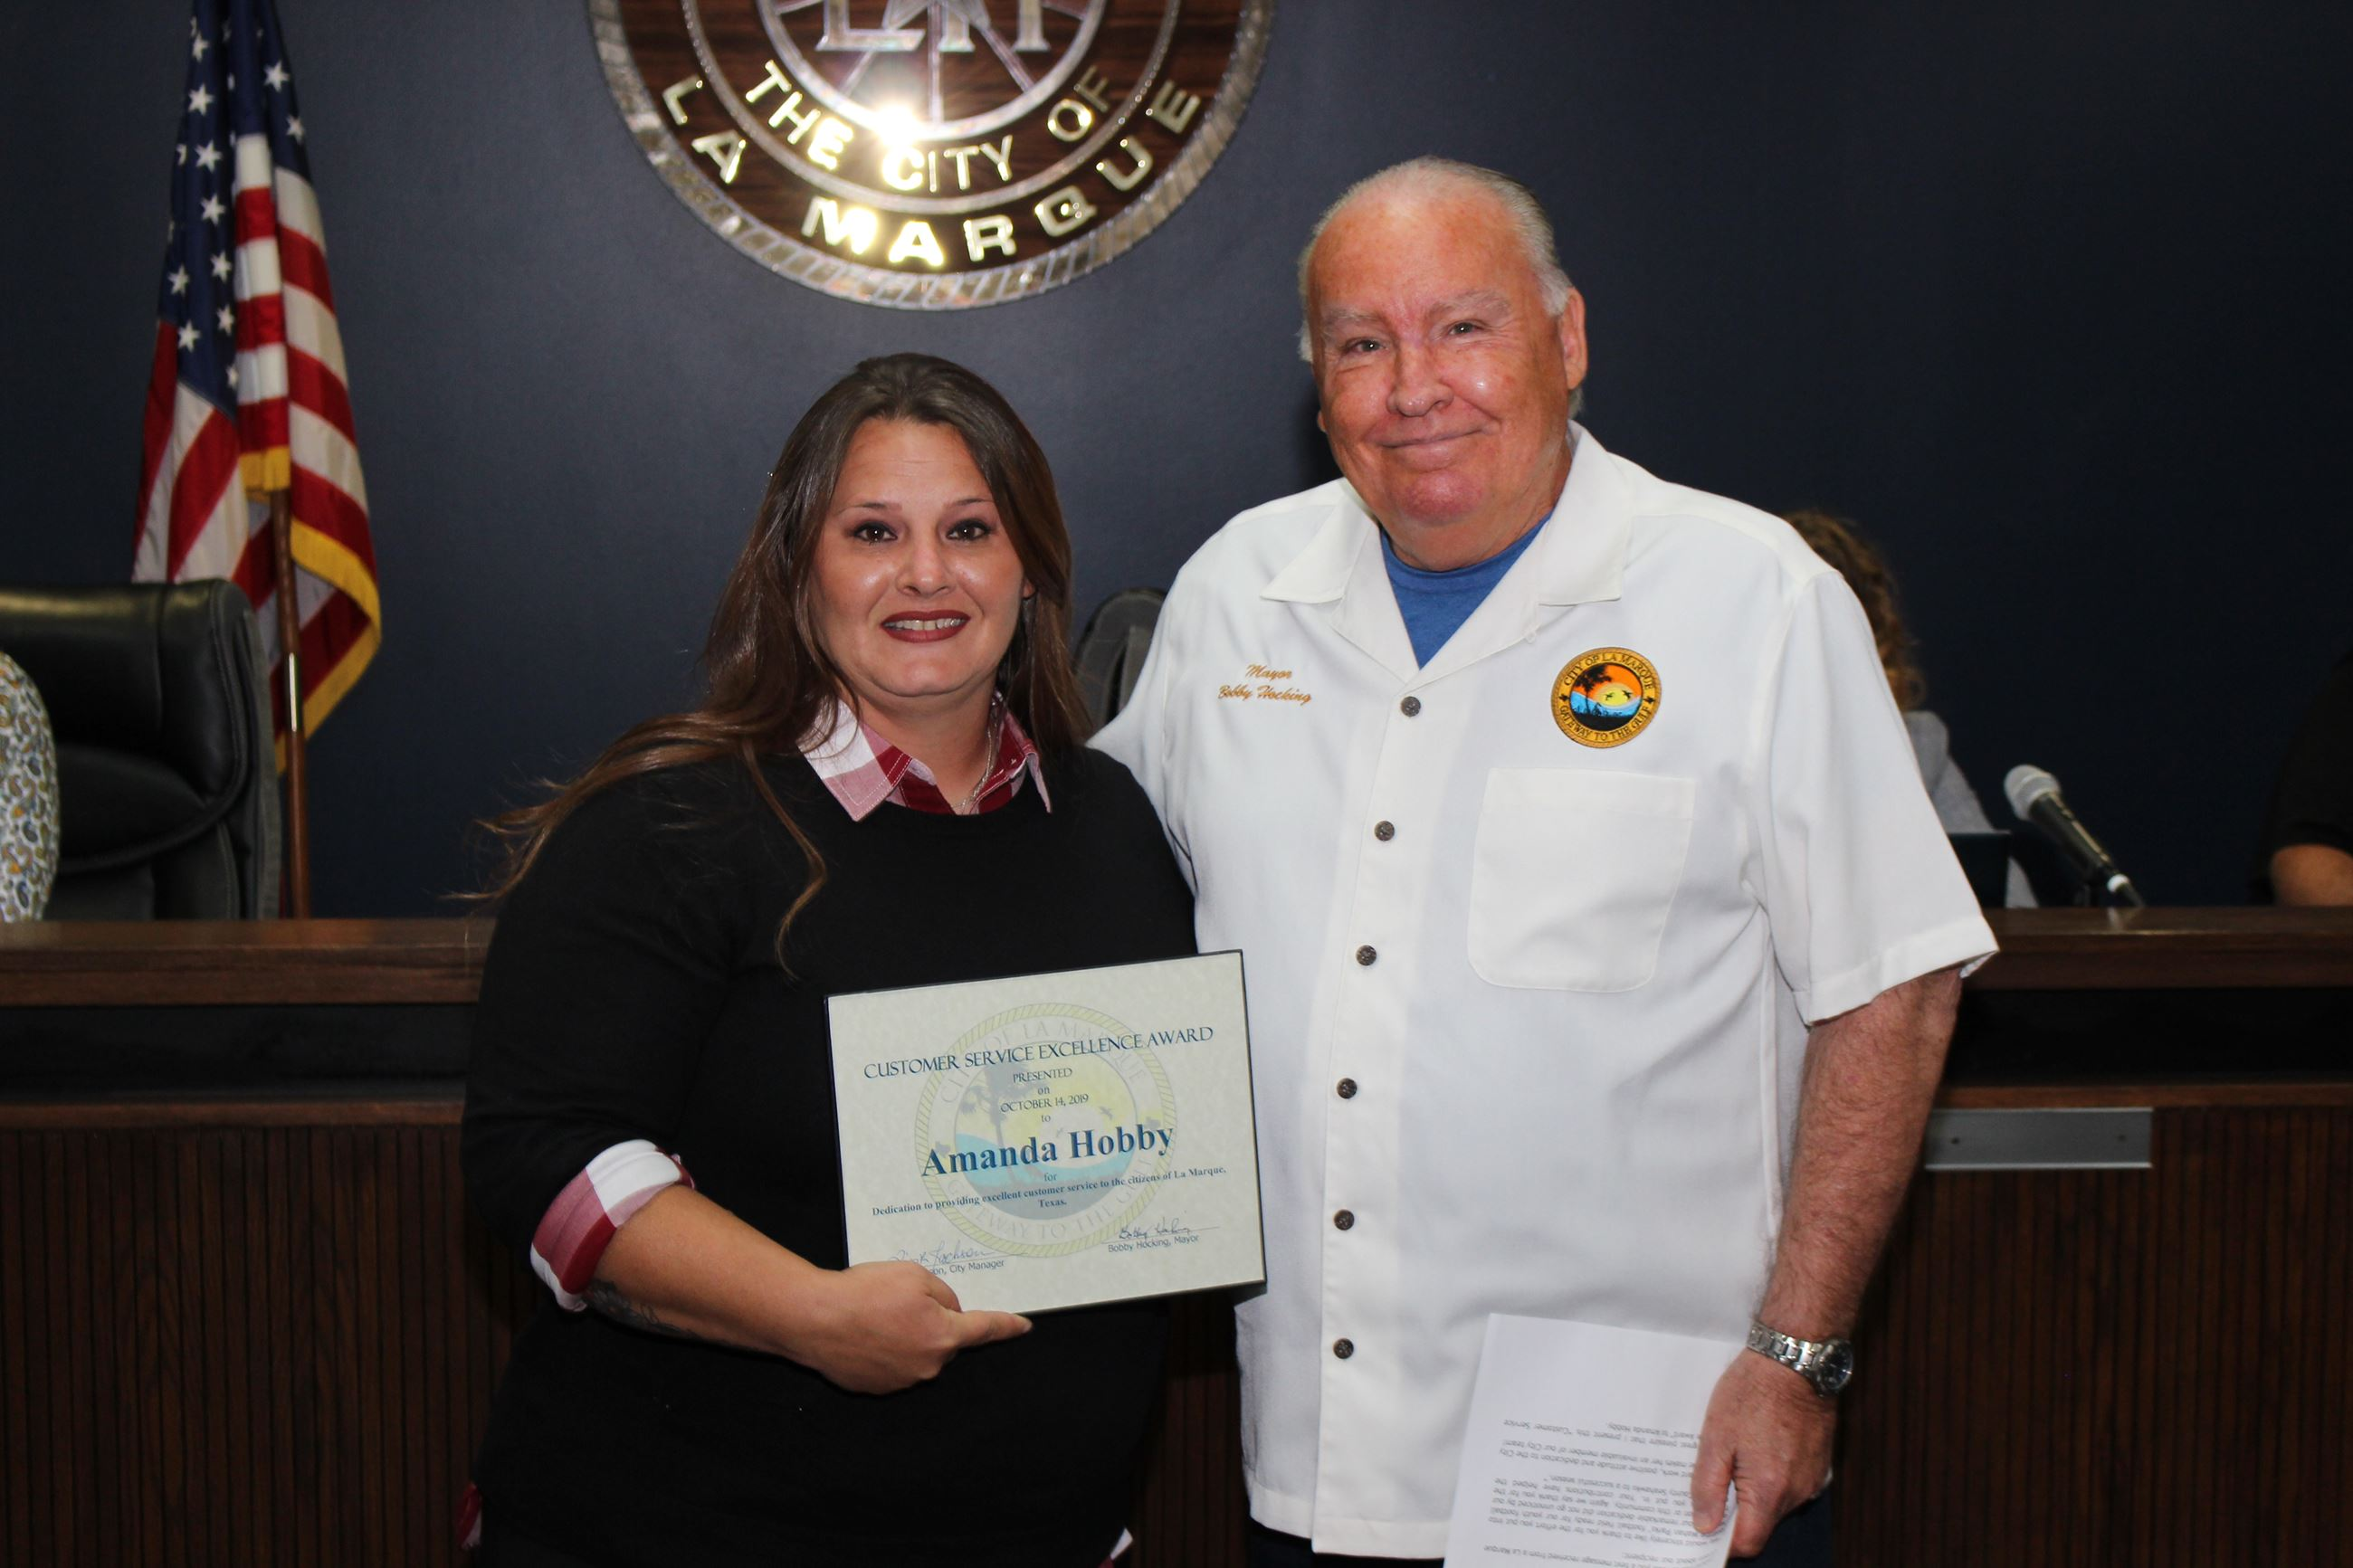 Amanda Hobby accepting Customer Service Award with Mayor Hocking